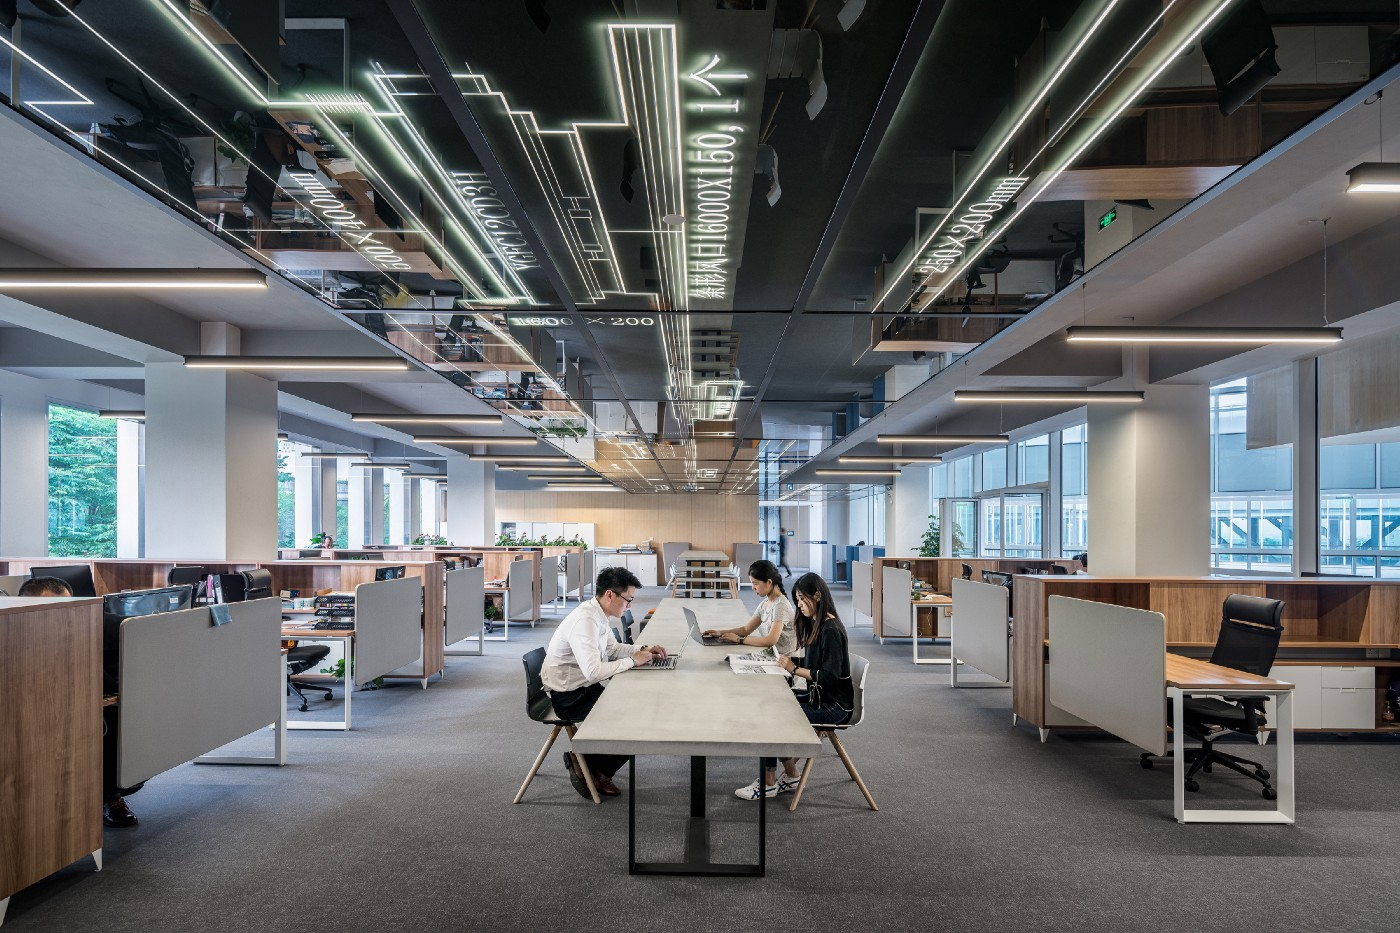 man and woman sit at a table in an open, modern office